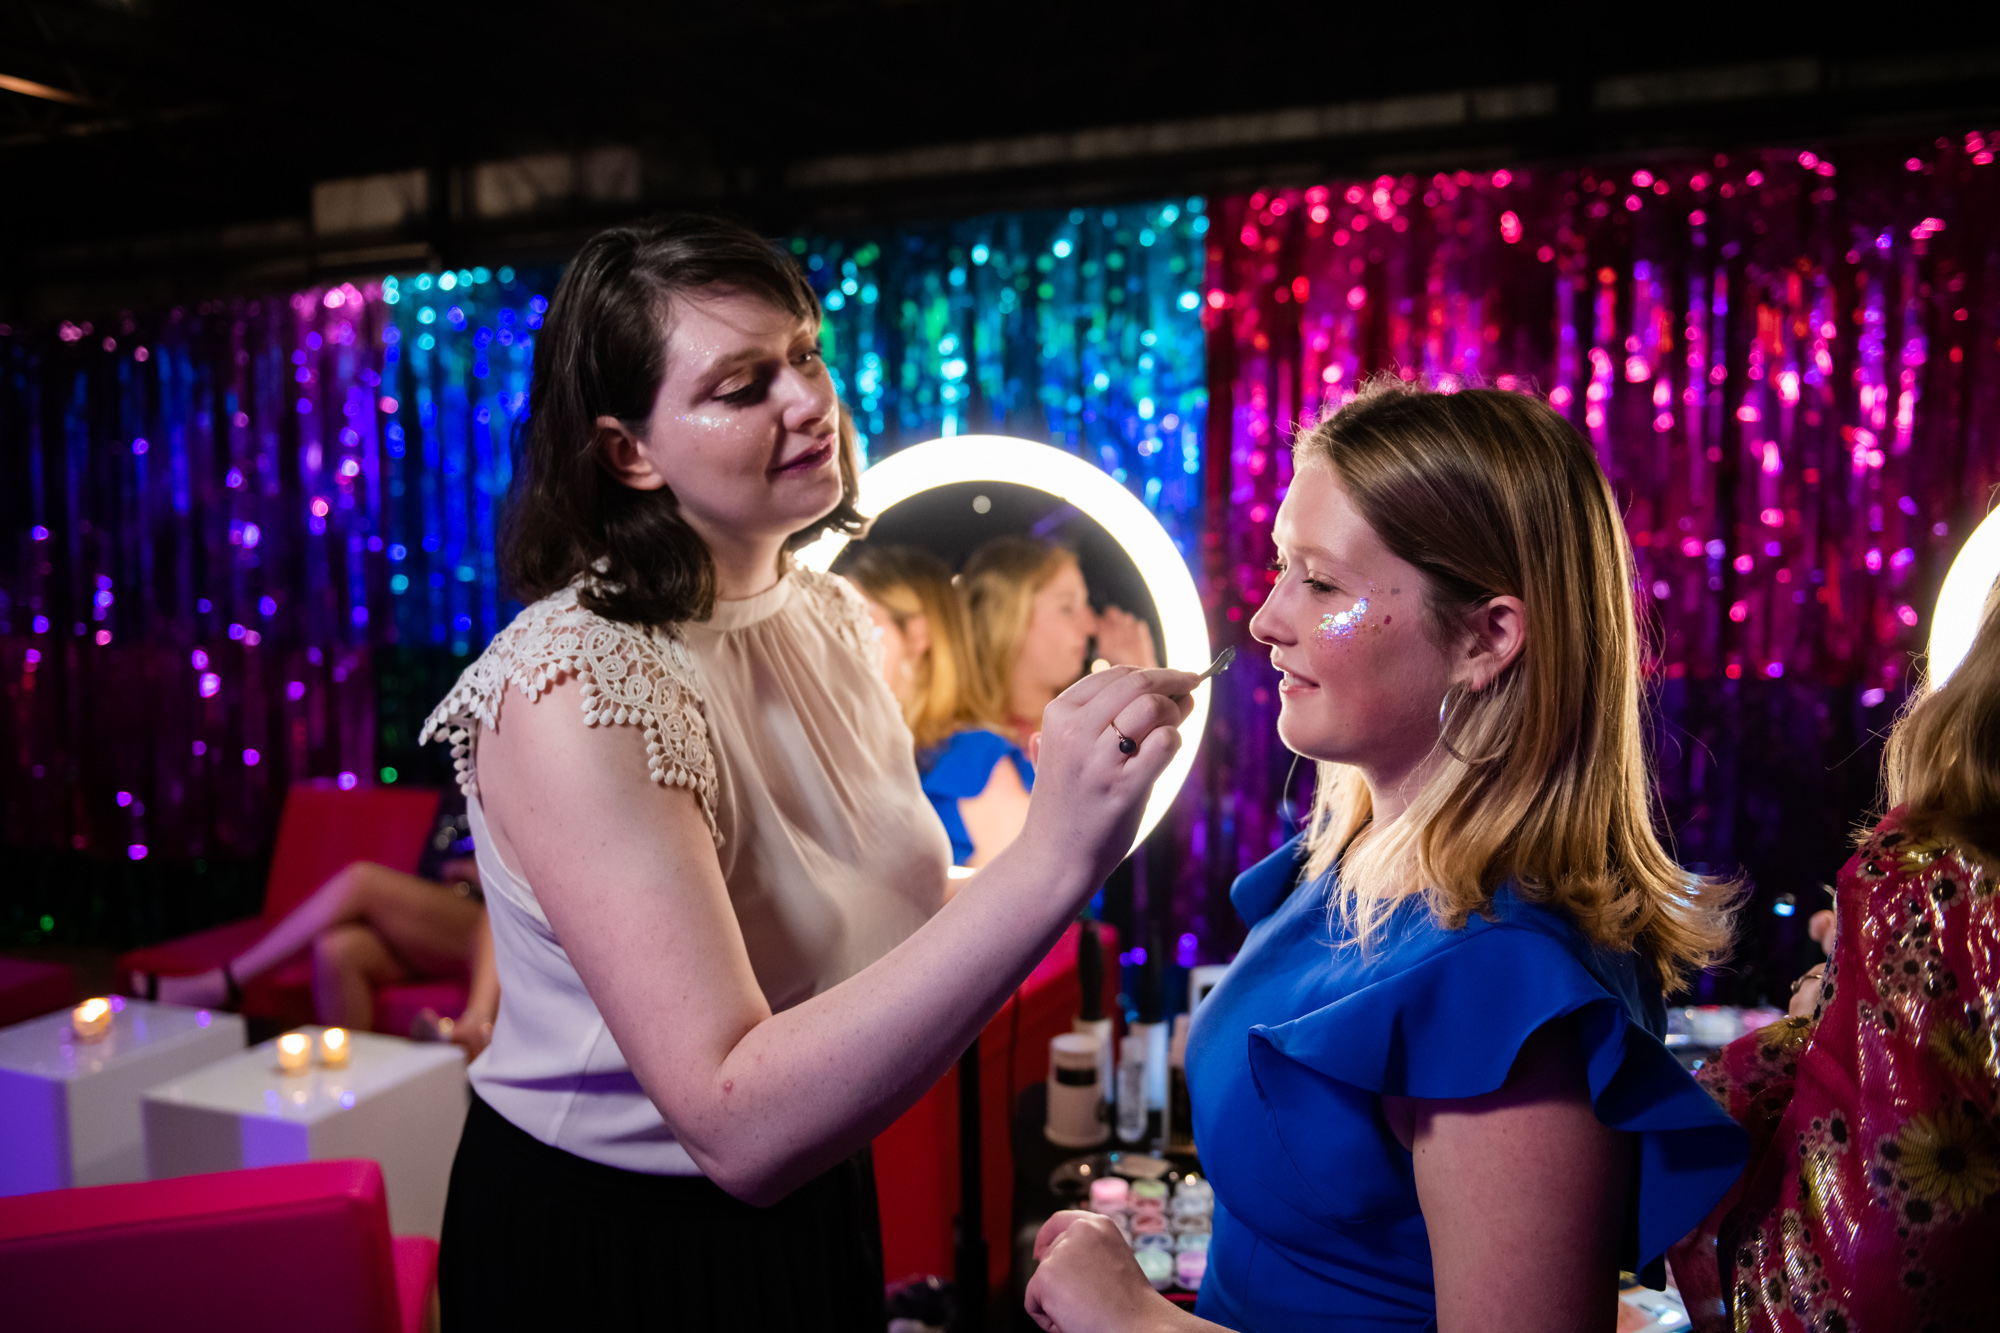 A guest gets glittered at the Glitter Buffet. Photo: Scott Myers